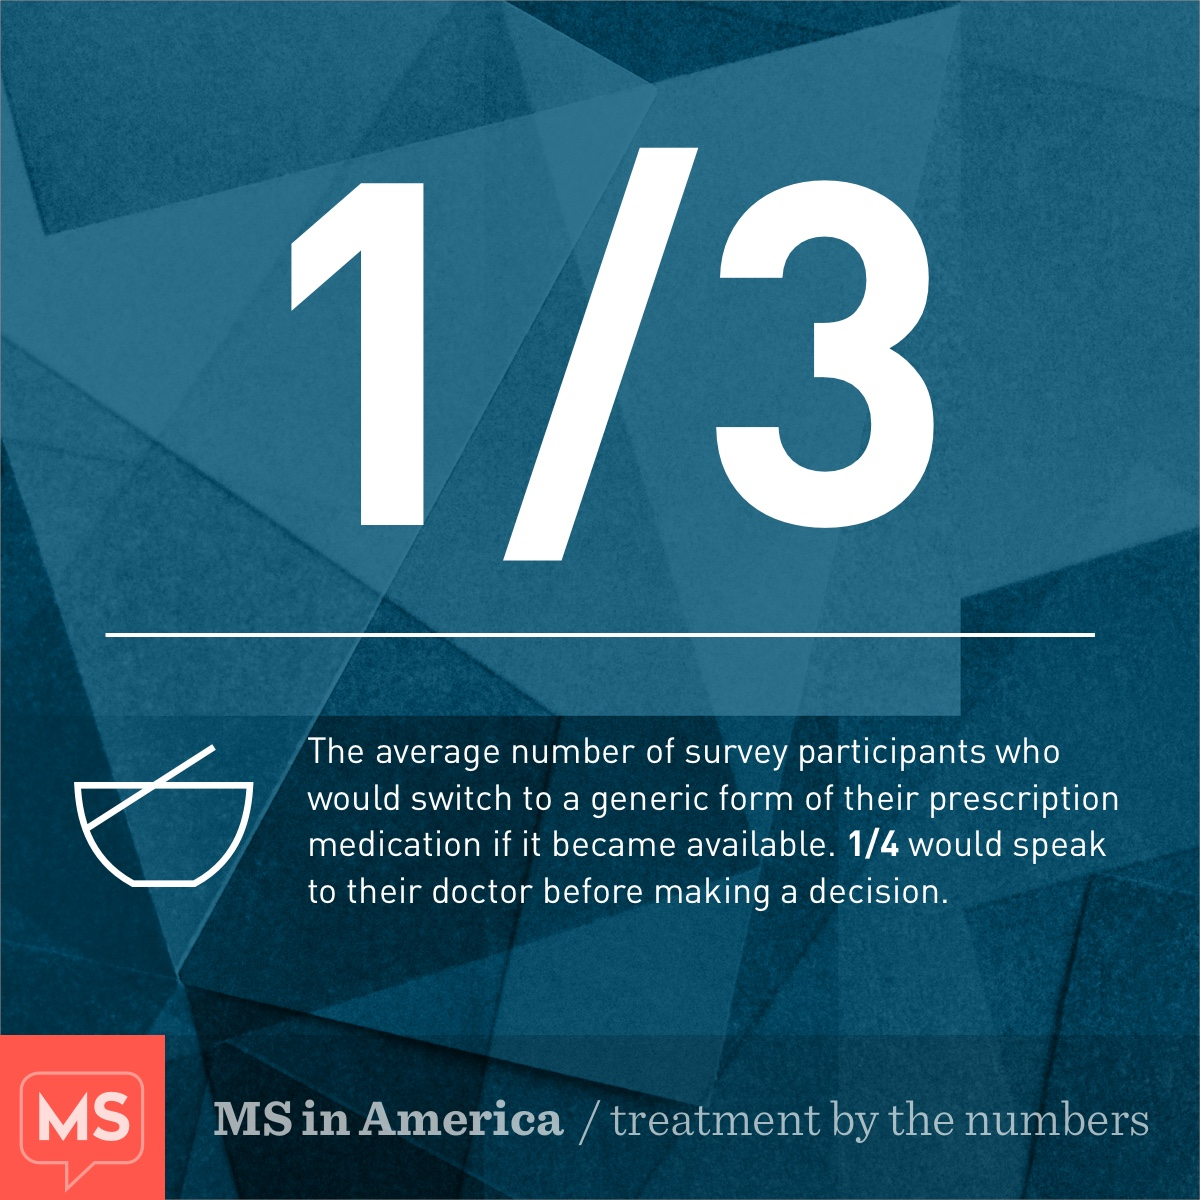 MS treatment by the numbers